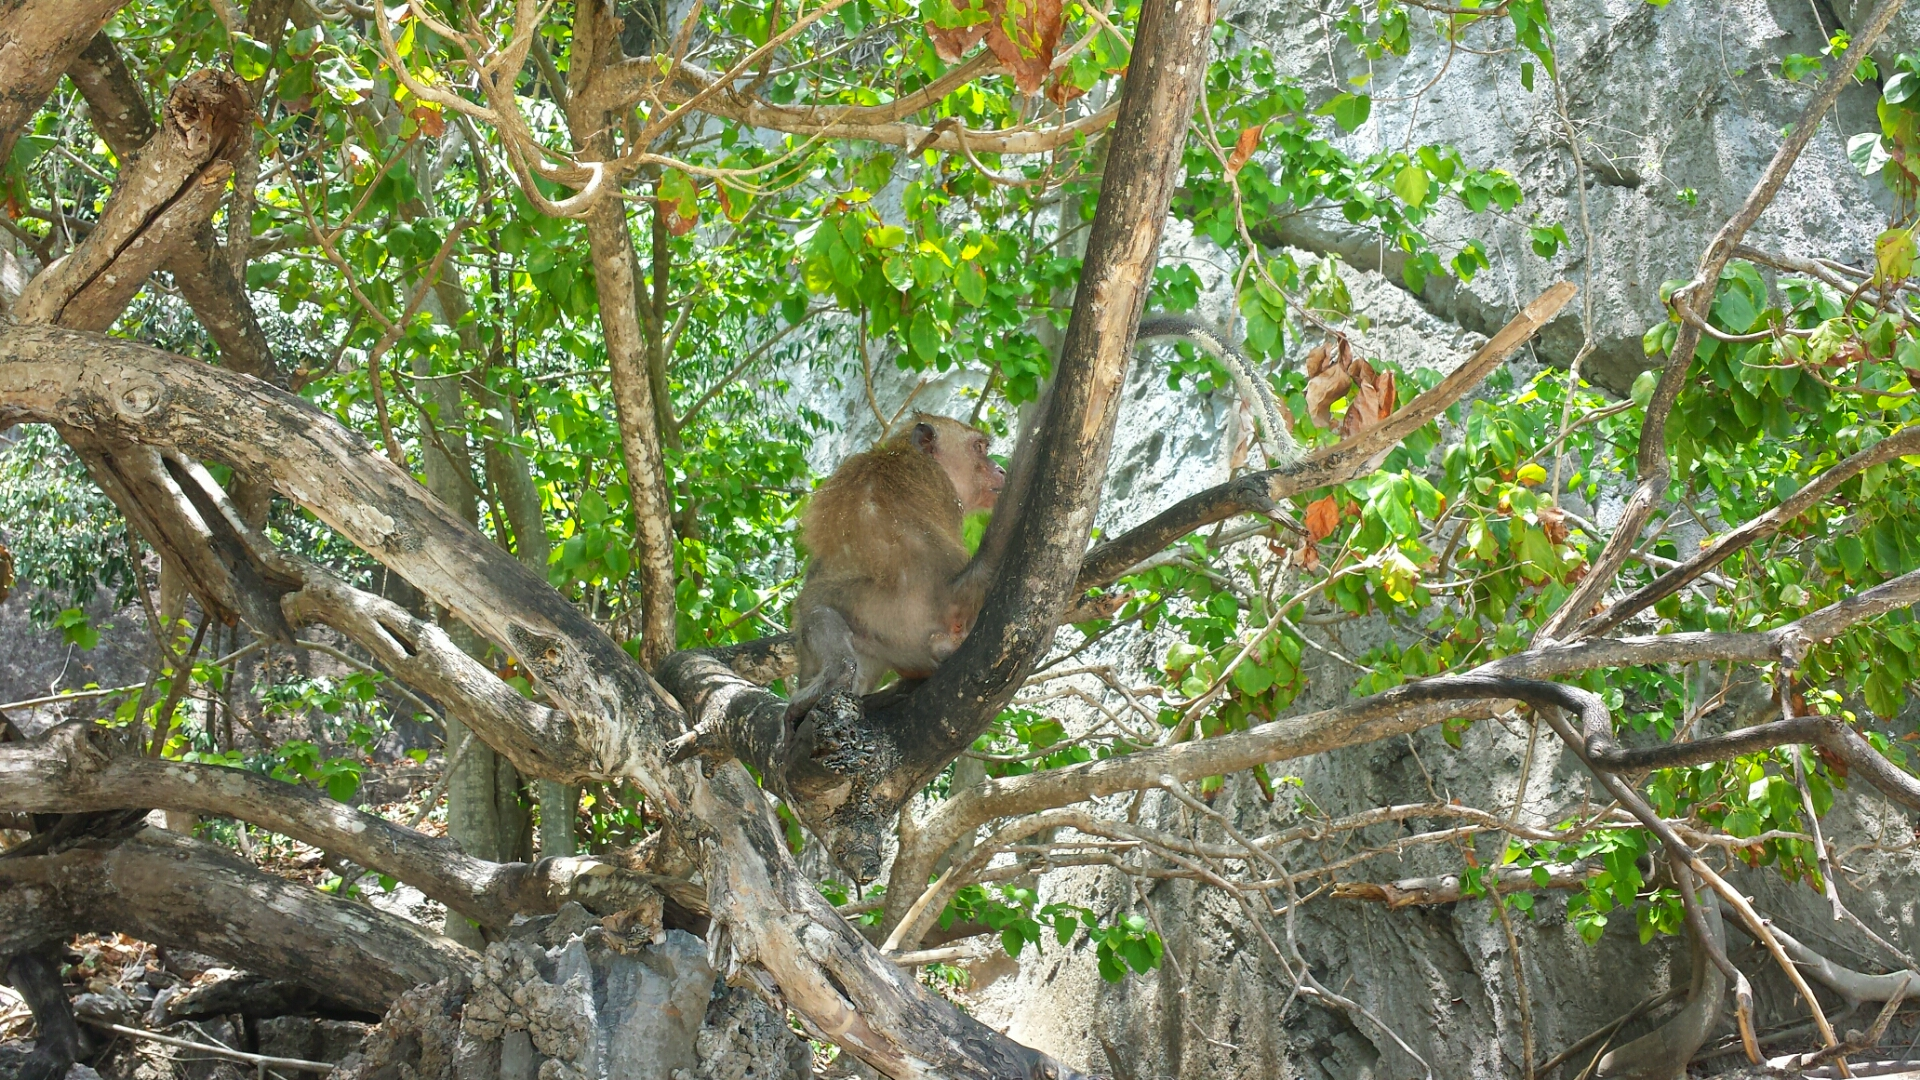 Monkey_Beach_Phuket_Thailand_Islands